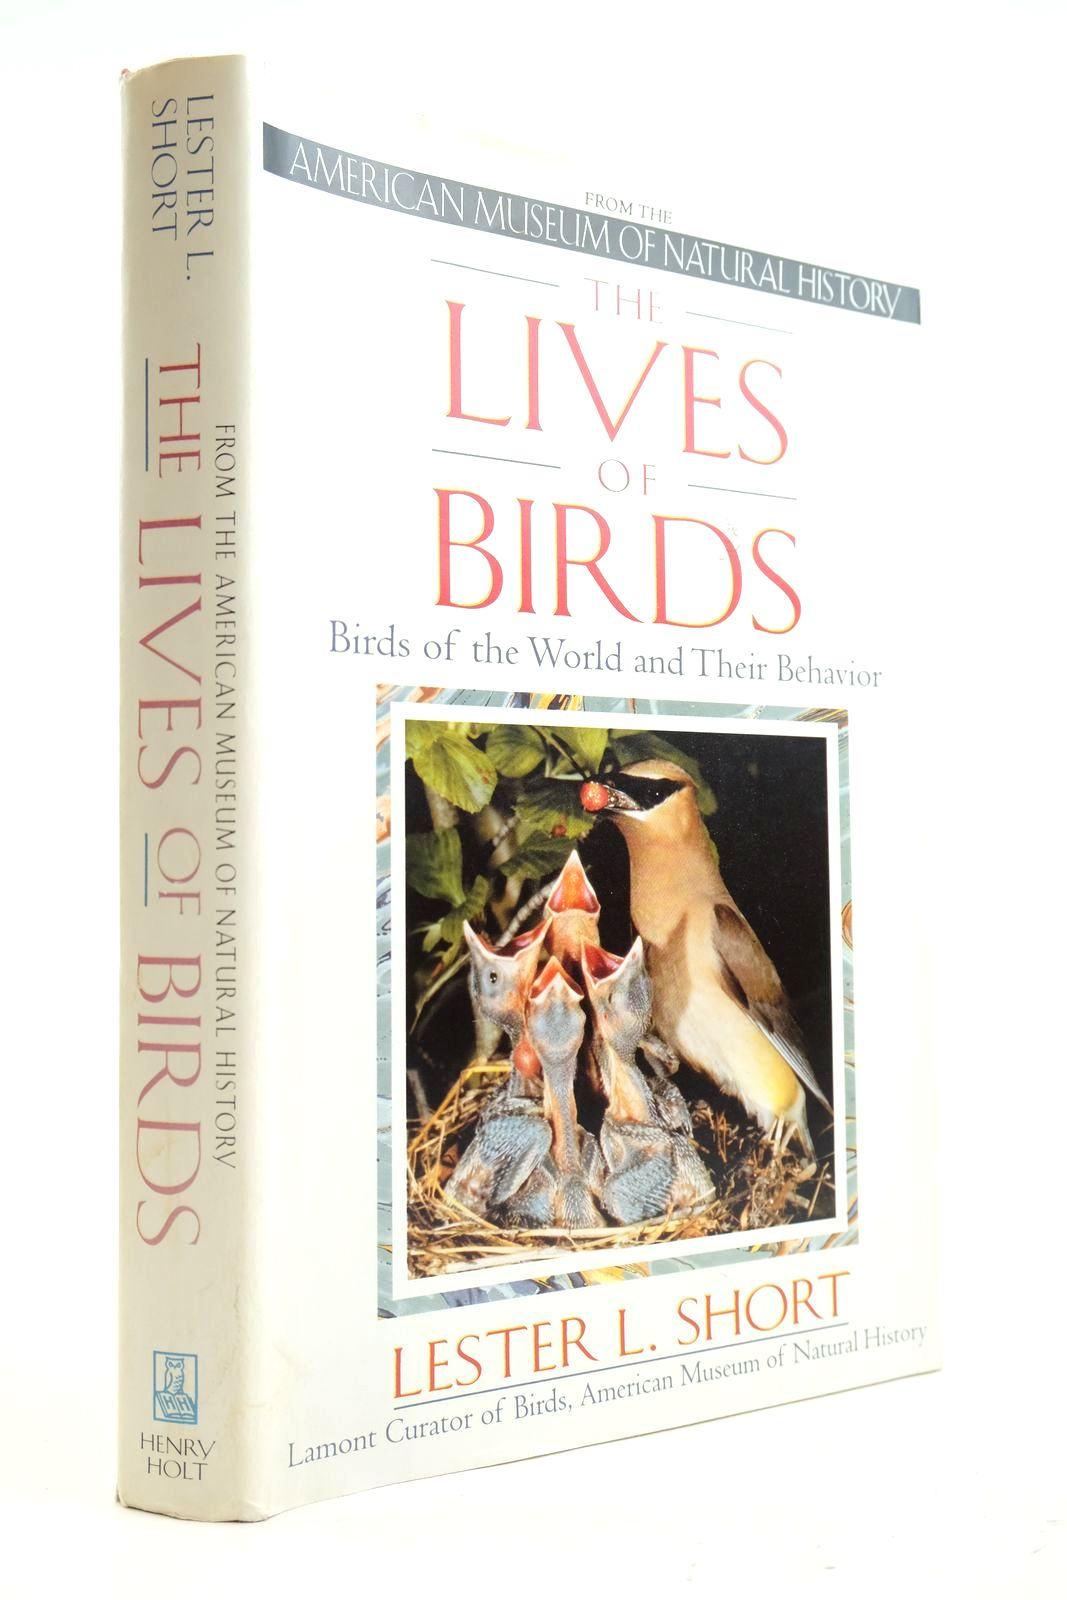 Photo of THE LIVES OF BIRDS BIRDS OF THE WORLD AND THEIR BEHAVIOR written by Short, Lester L. published by Henry Holt and Company (STOCK CODE: 2133079)  for sale by Stella & Rose's Books